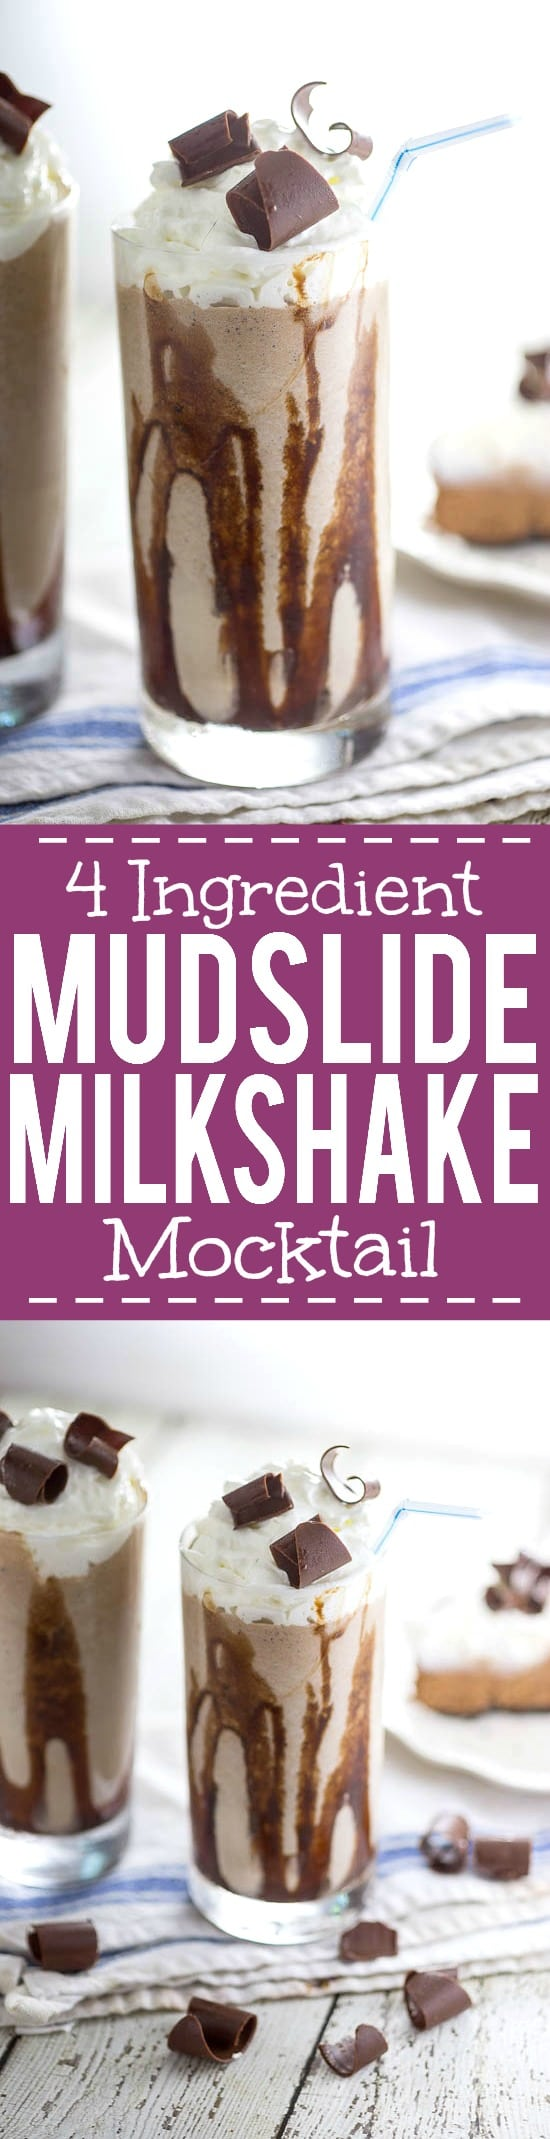 Mudslide Shake Recipe - Calling all chocolate lovers! Everyone who loves chocolate will adore this quick and easy Mudslide Shake recipe! Make it in just 10 minutes with 4 ingredients! Yum!